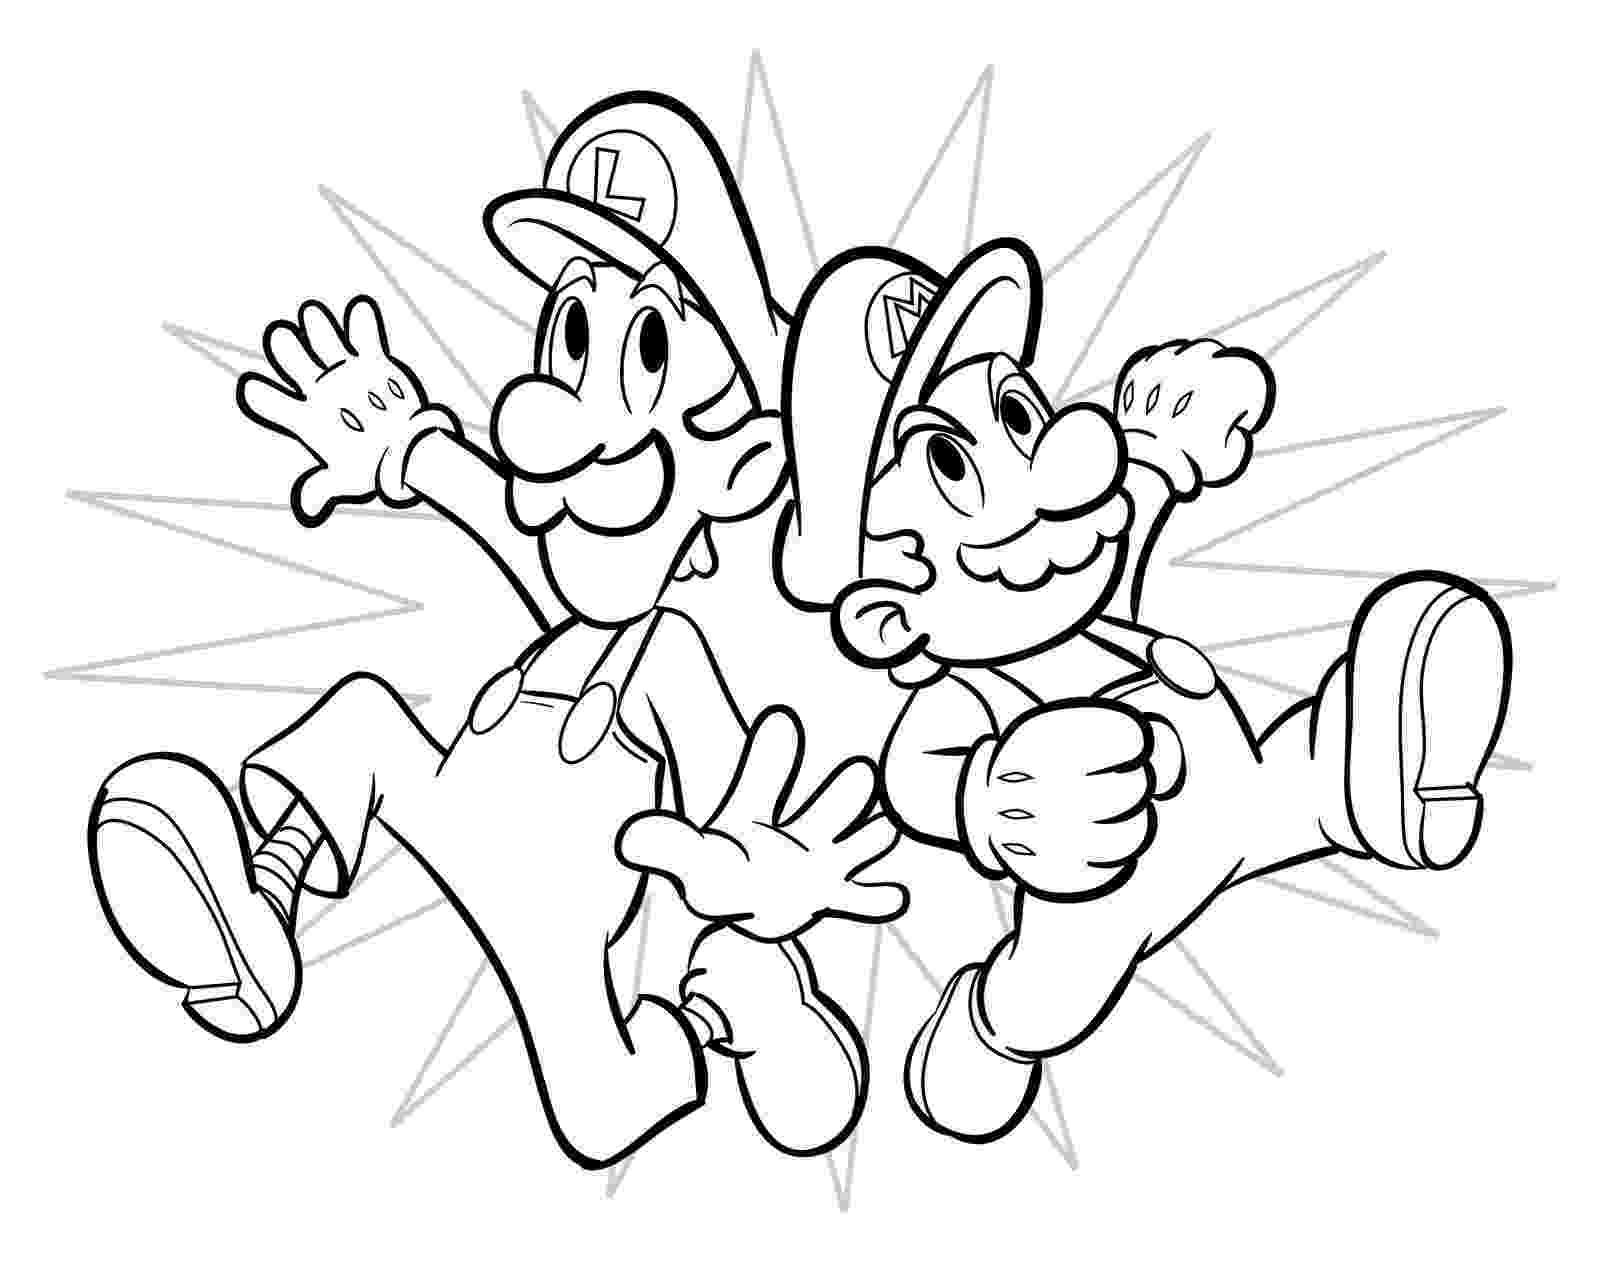 super mario bros pictures to print and colour official mario coloring pages gonintendo colour and pictures bros super to mario print